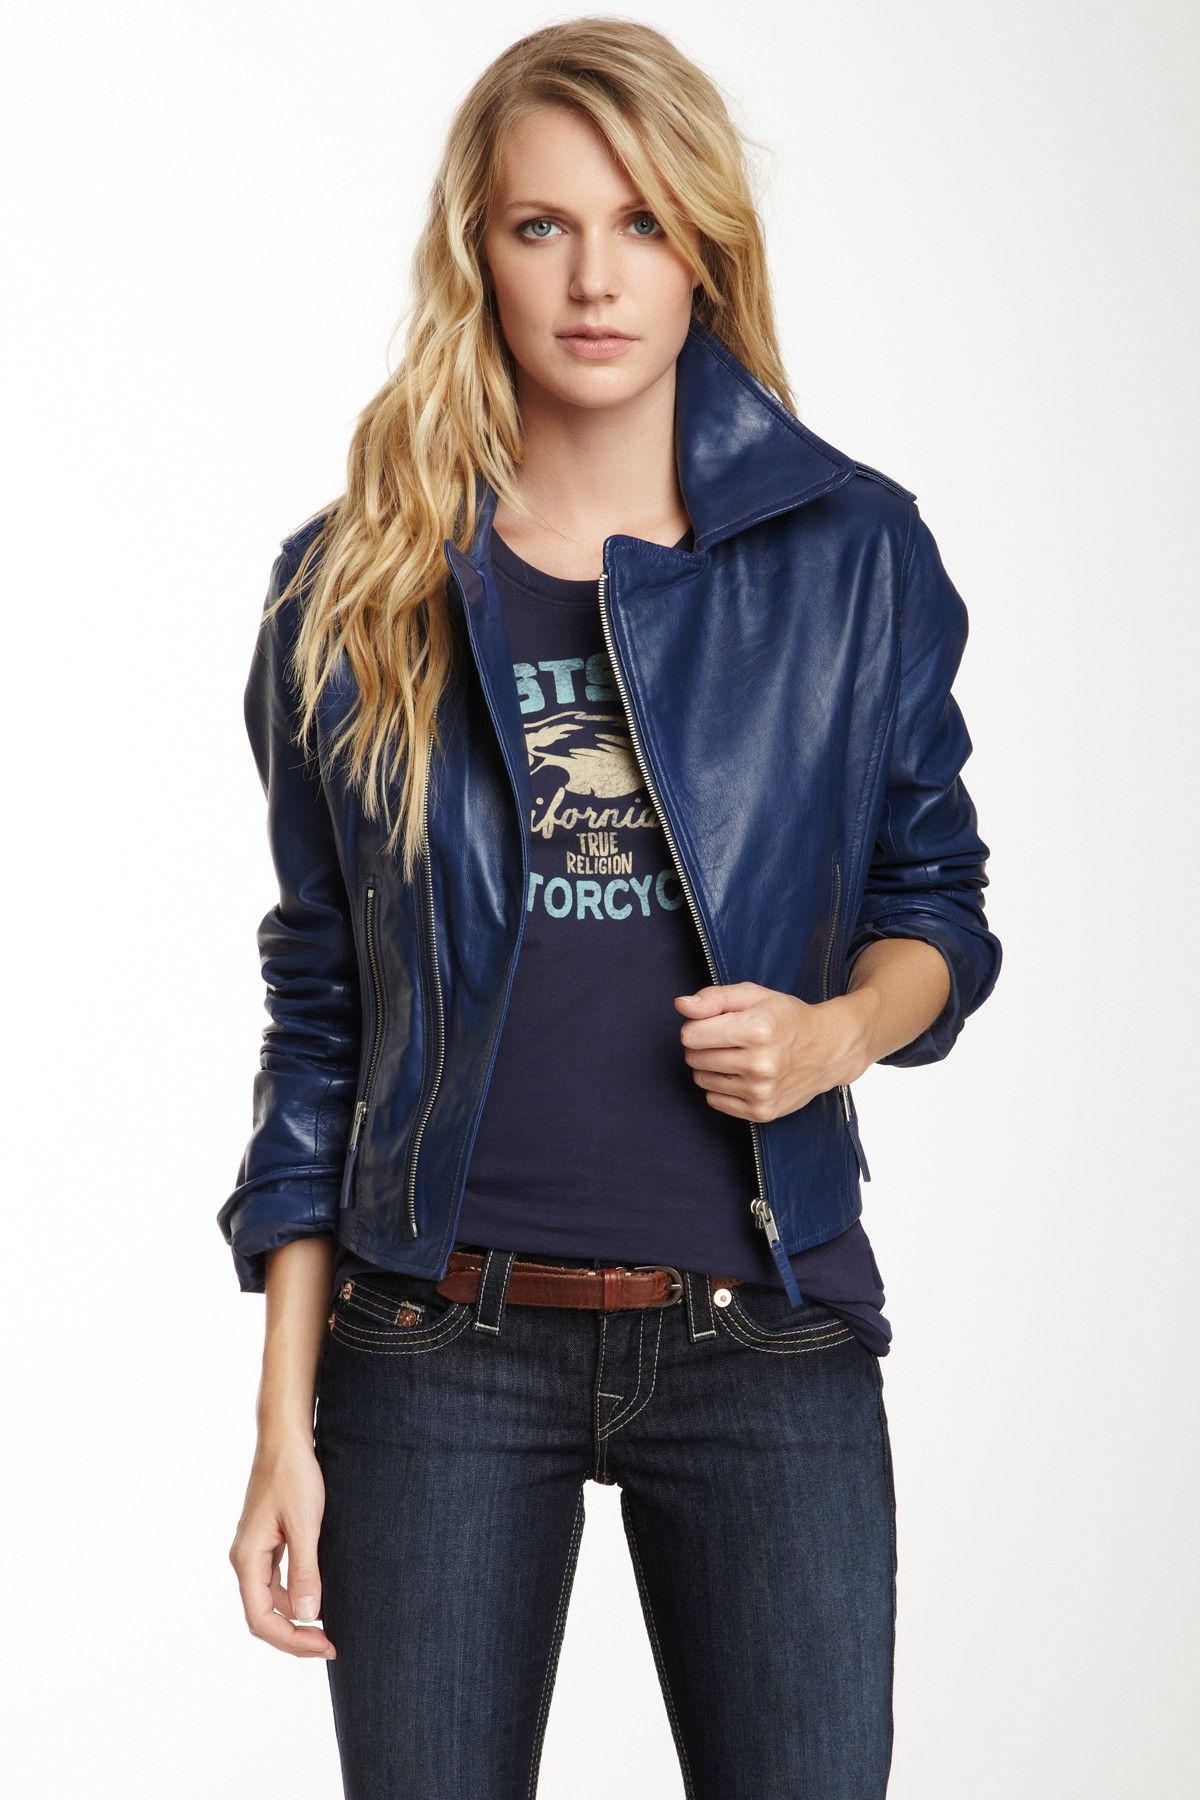 Blue leather moto jacket with graphic tee and dark jeans